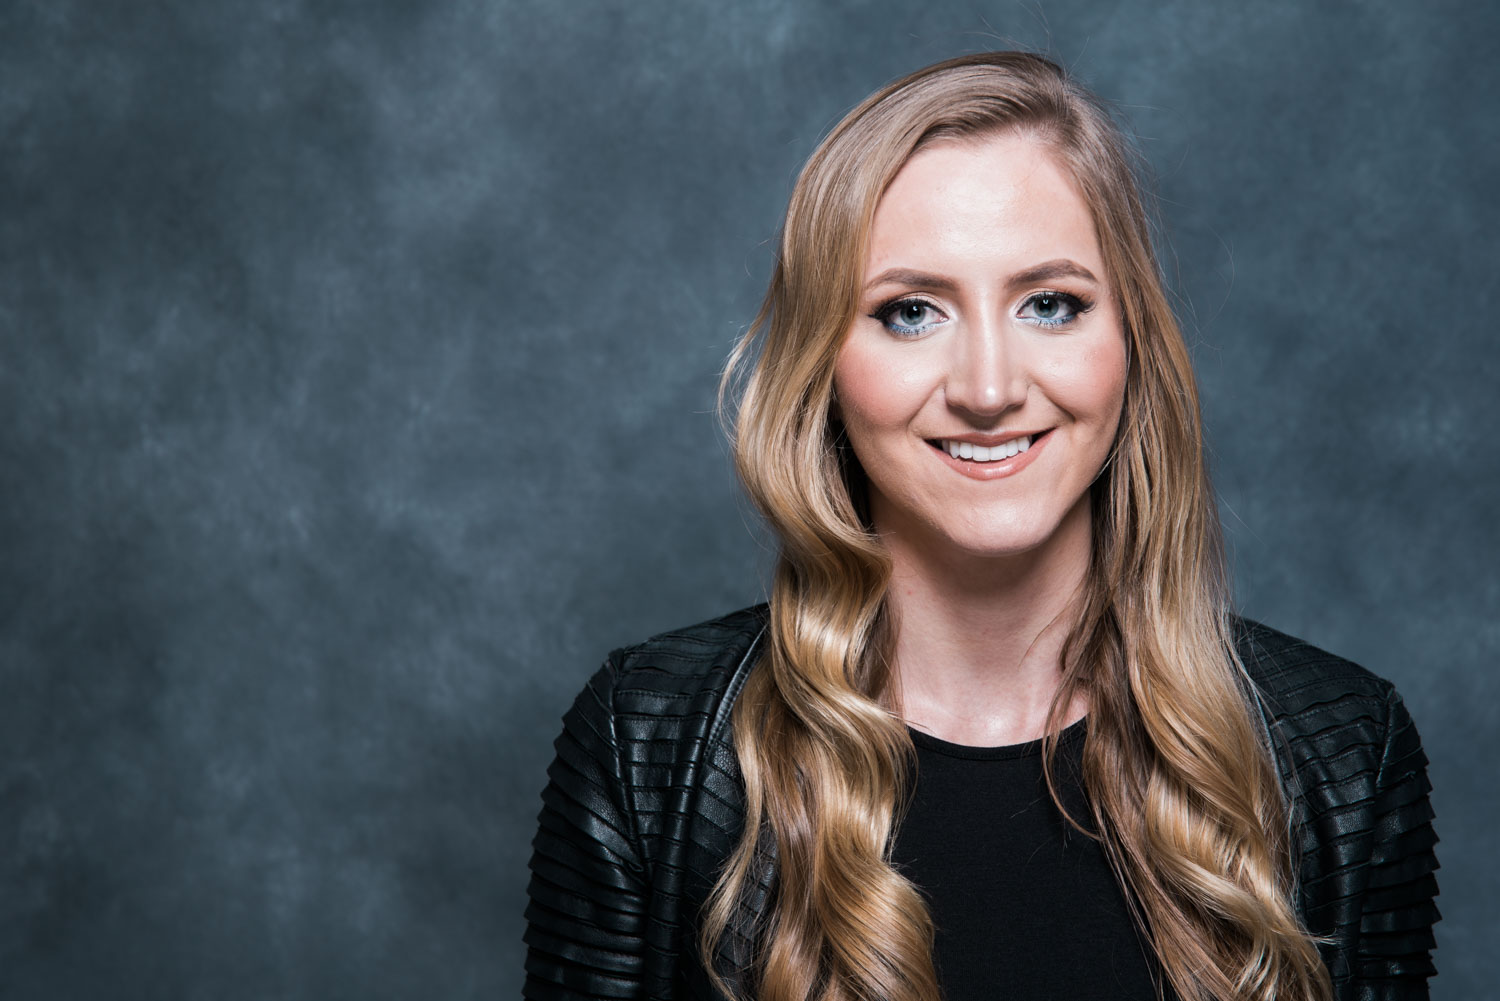 colorful headshot of female professional for personal branding